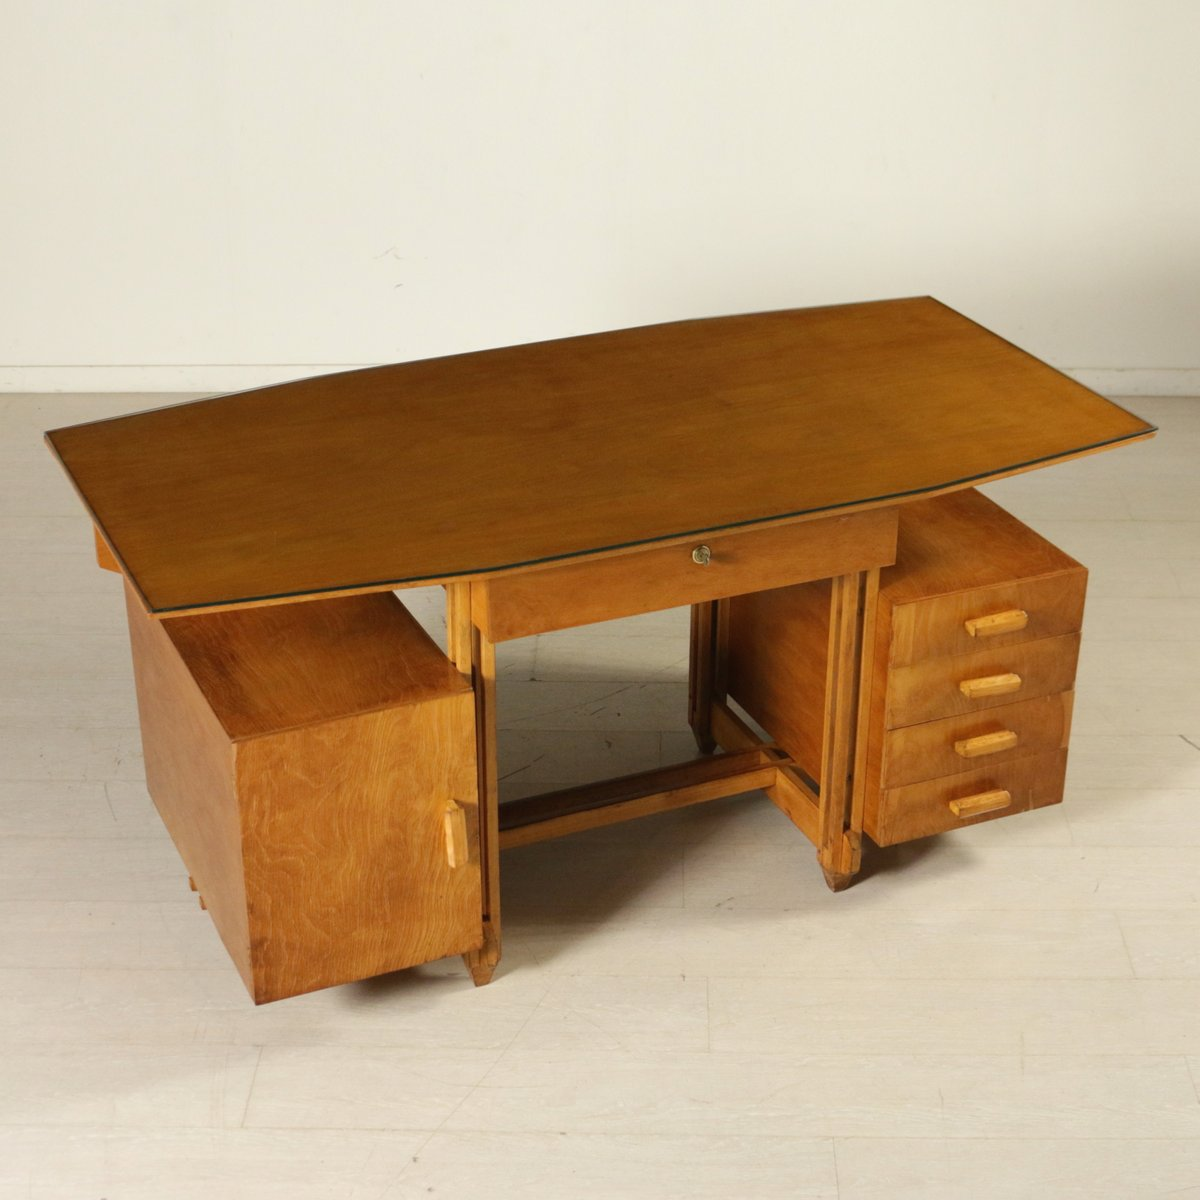 bureau en contreplaqu de bouleau avec plateau en verre italie 1950s en vente sur pamono. Black Bedroom Furniture Sets. Home Design Ideas